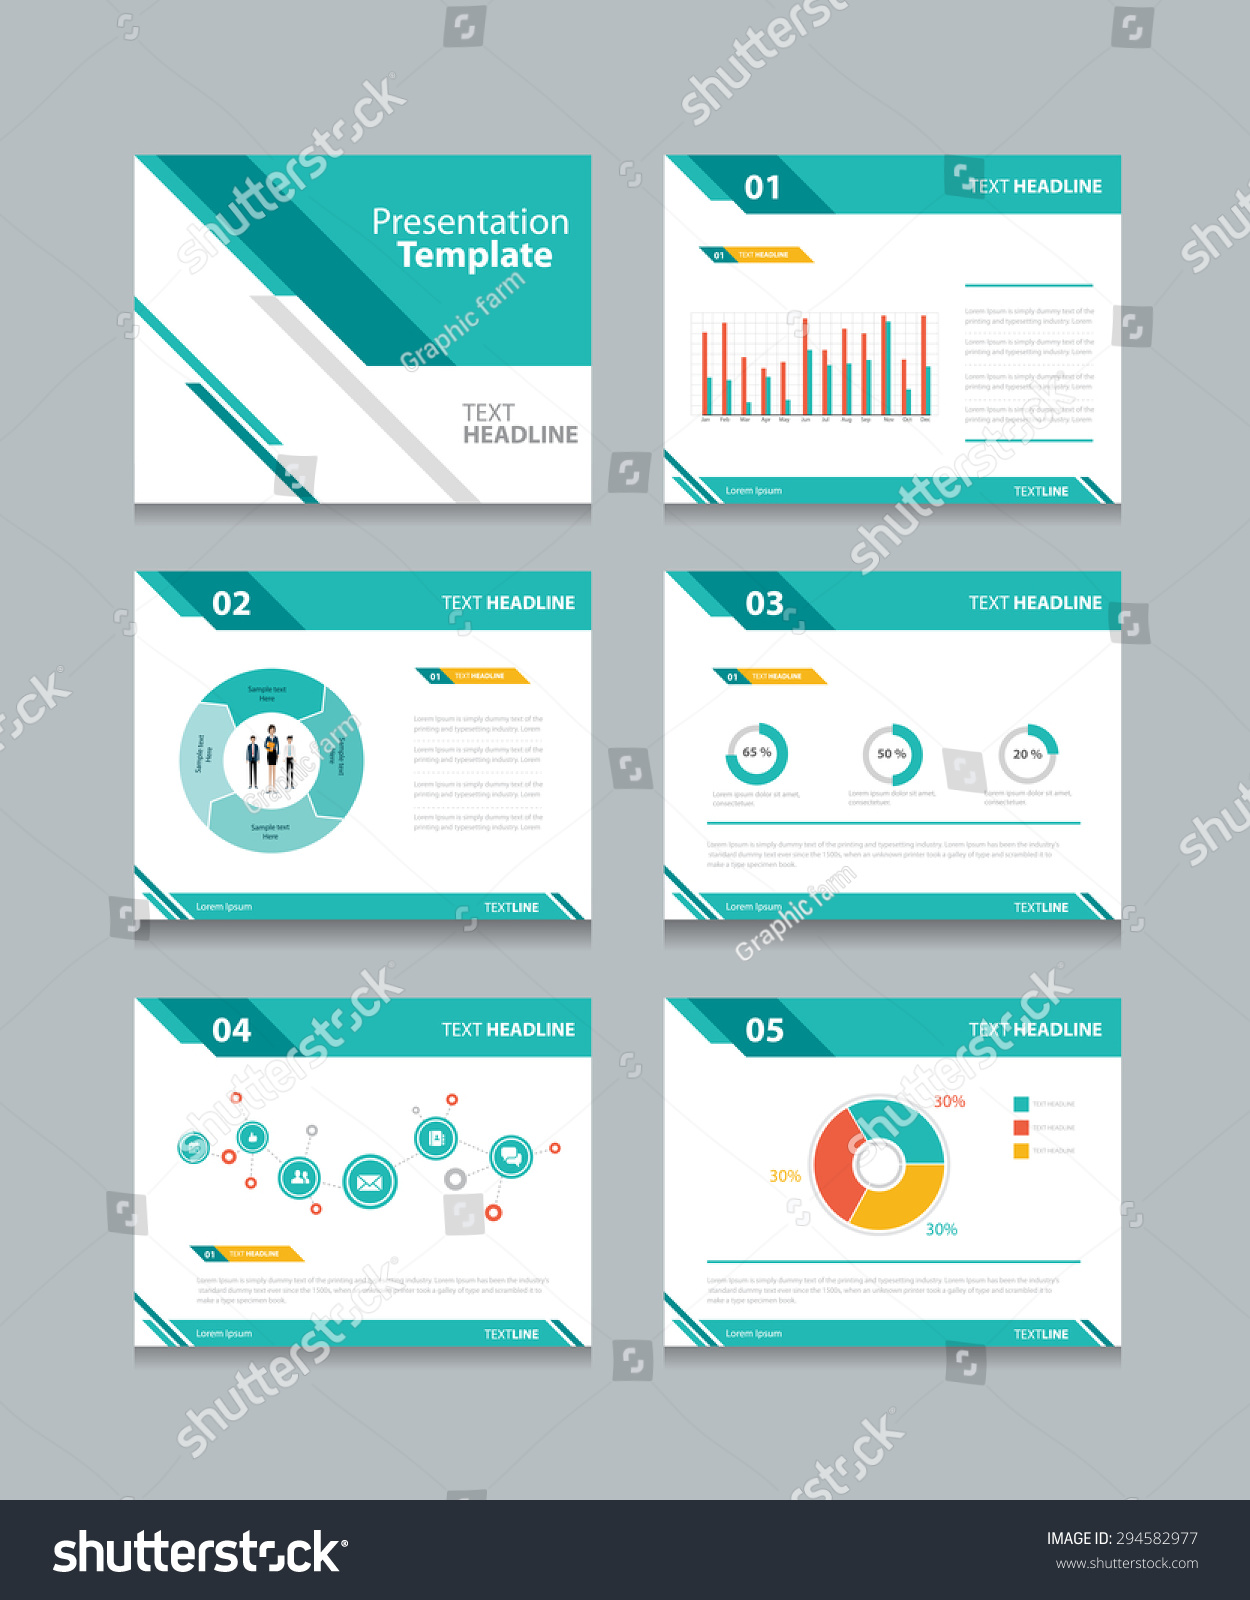 business presentation template setpowerpoint template design の